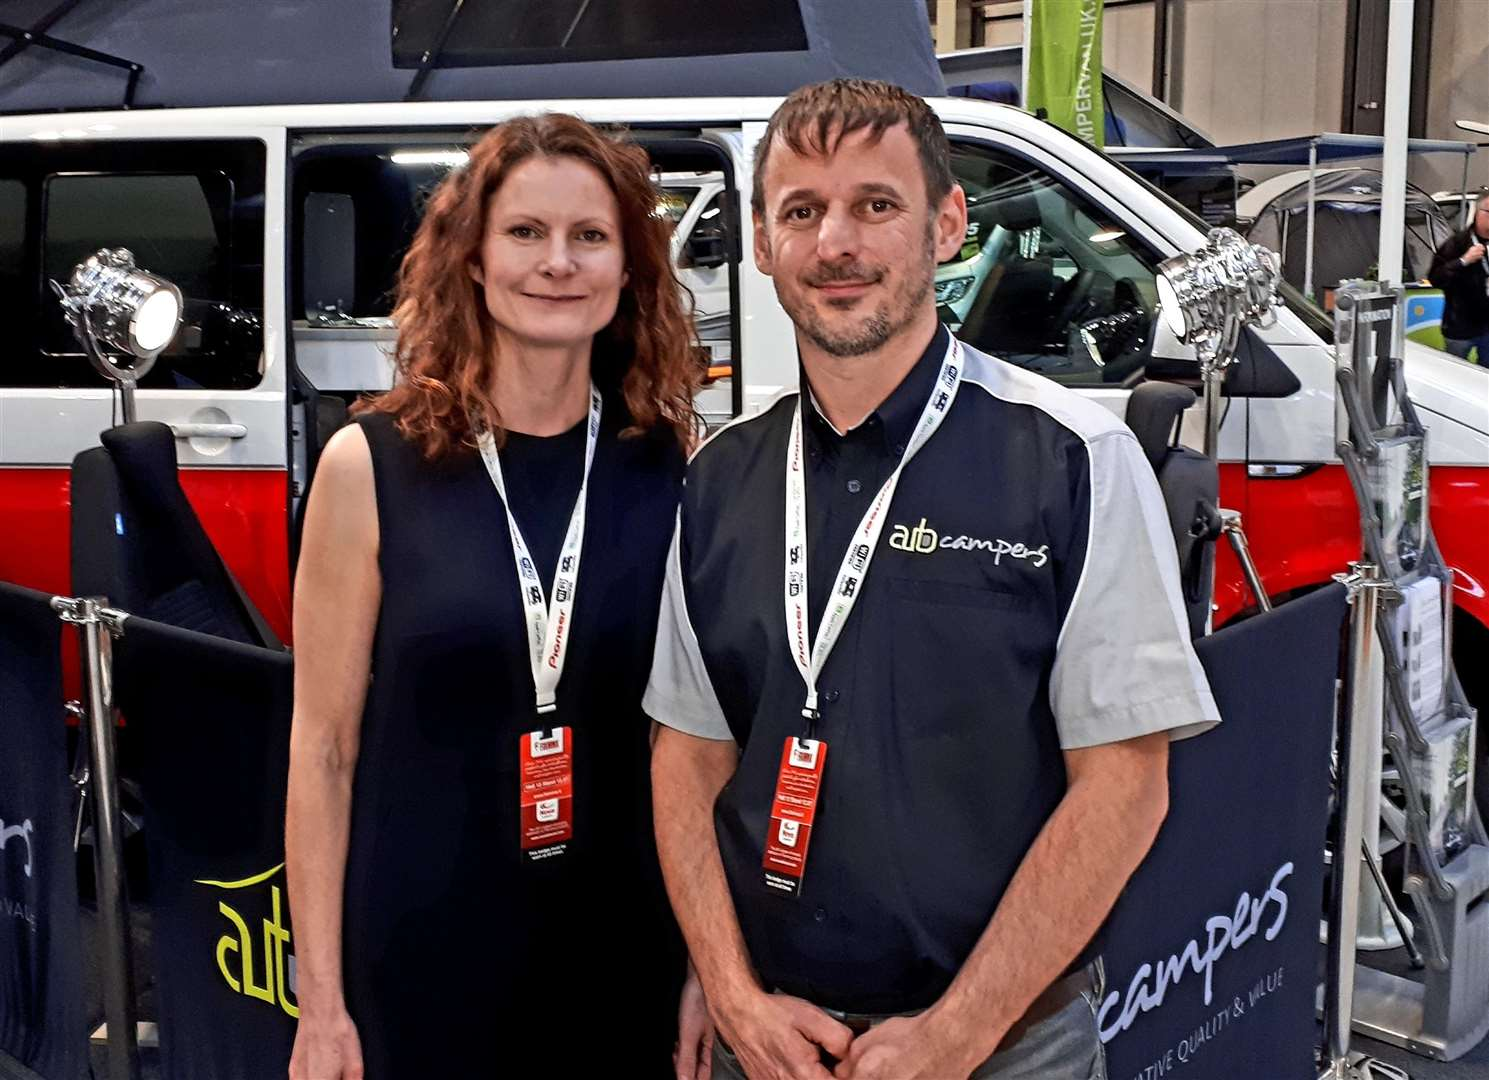 TEAMINGUP: Highland Auto Campers owner Mark Jarratt with girlfriend Alicia